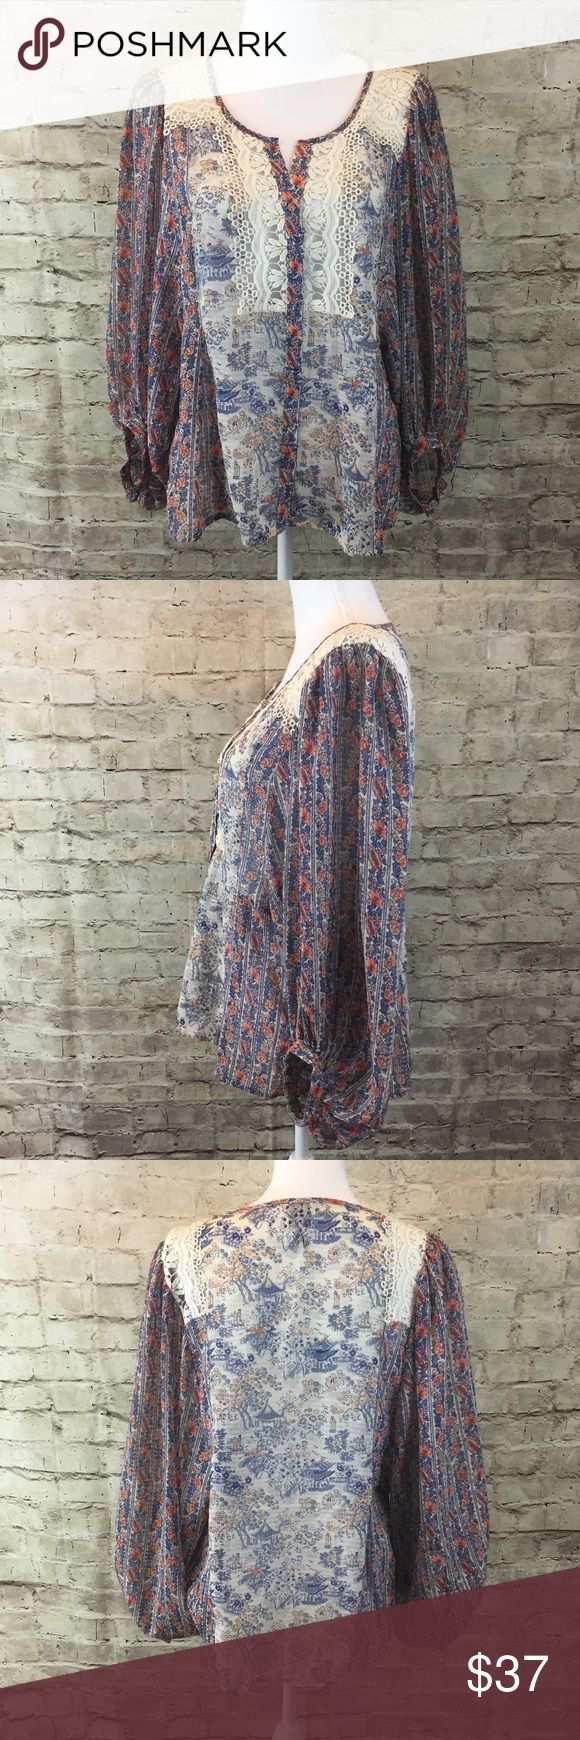 Anthropologie HD in Paris Boho Top Boho long bubbly sleeve top with lace detail on the front. Semi sheer. 100% Polyester Anthropologie Tops Blouses